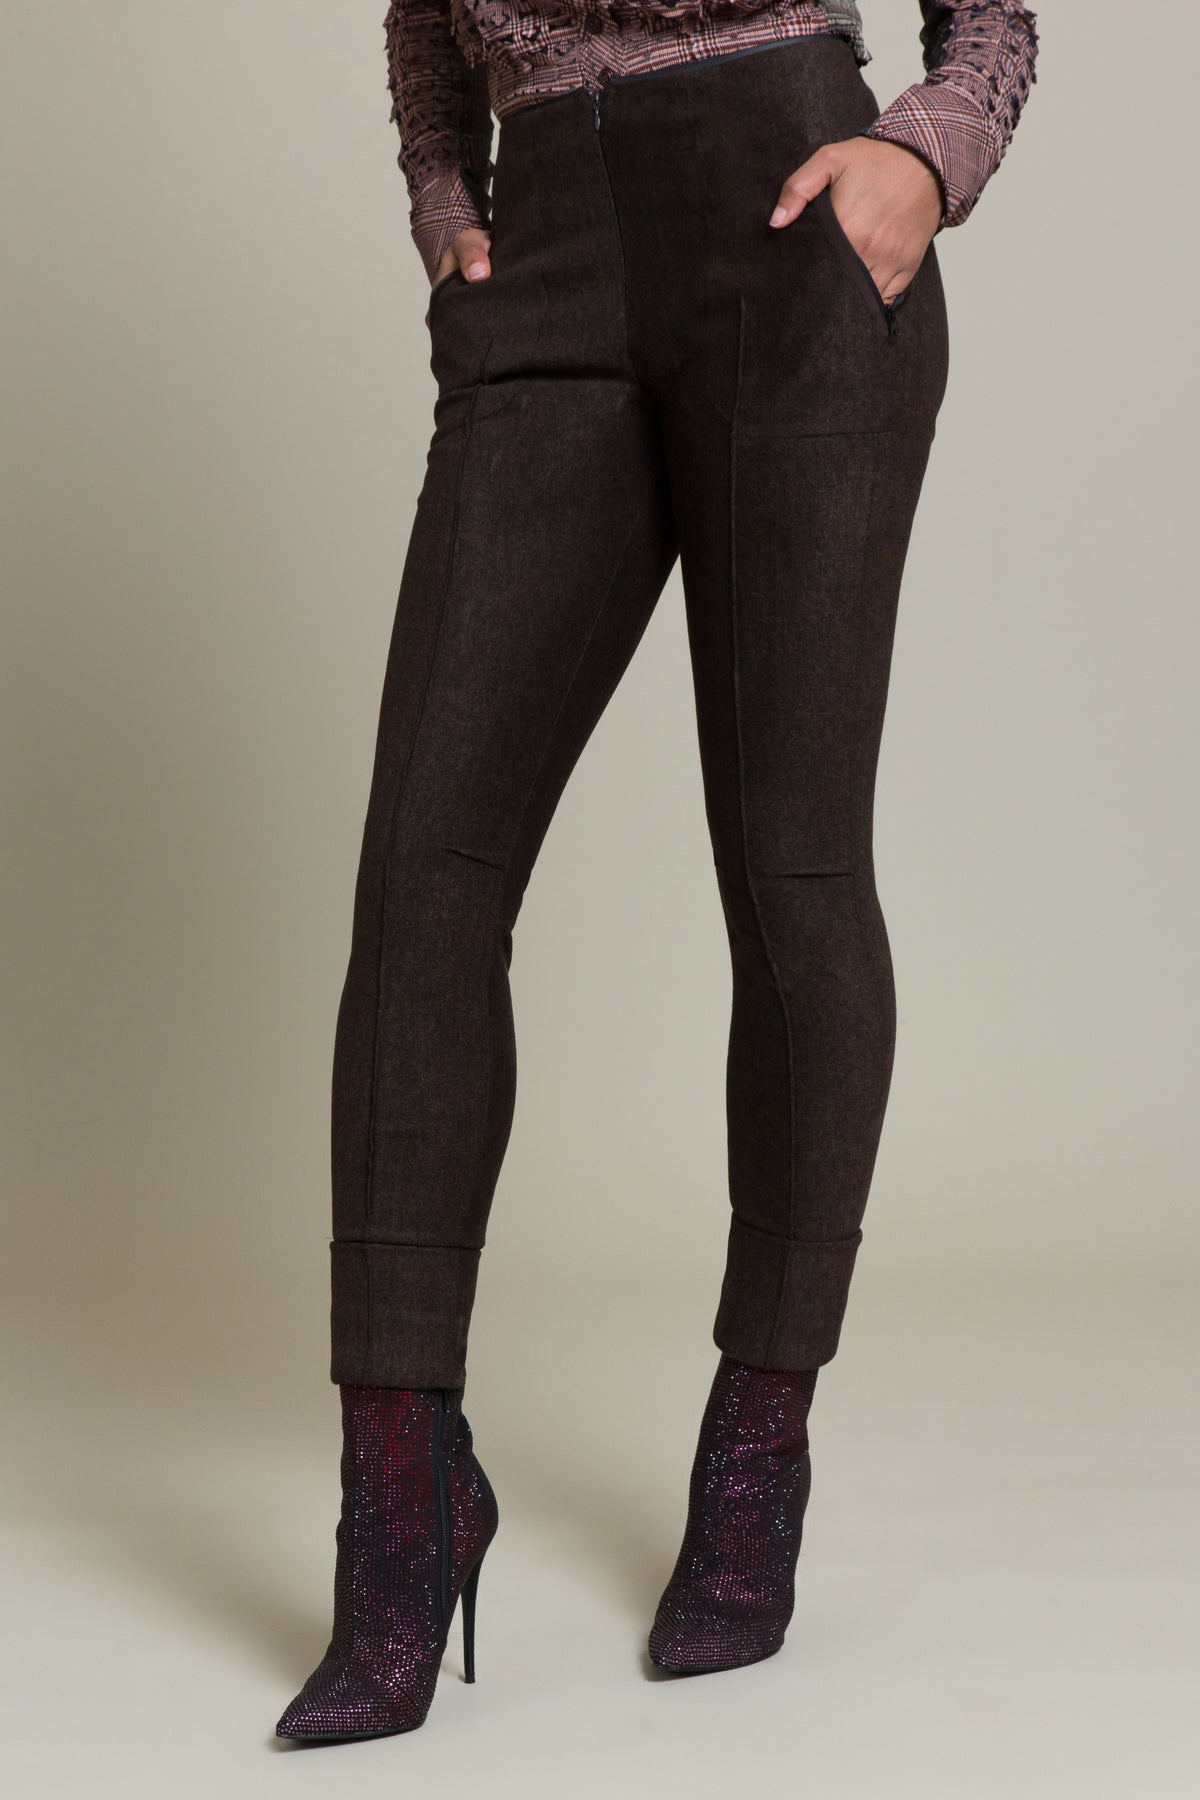 Flannel Ponte Stretch Pant